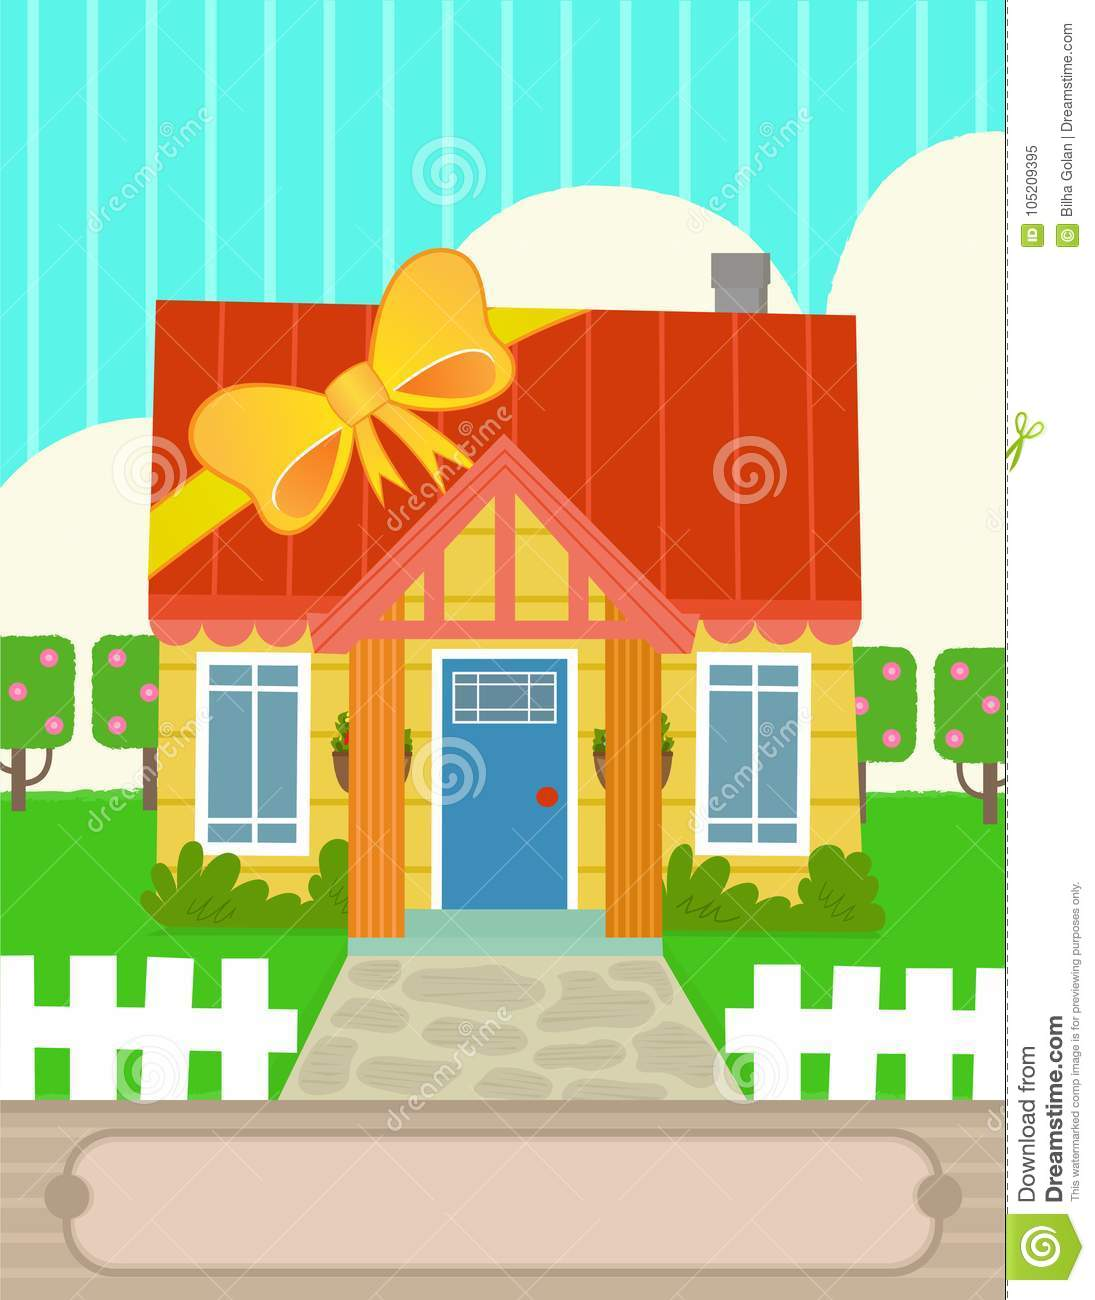 New home greeting card design stock vector illustration of grass new home greeting card design kristyandbryce Gallery